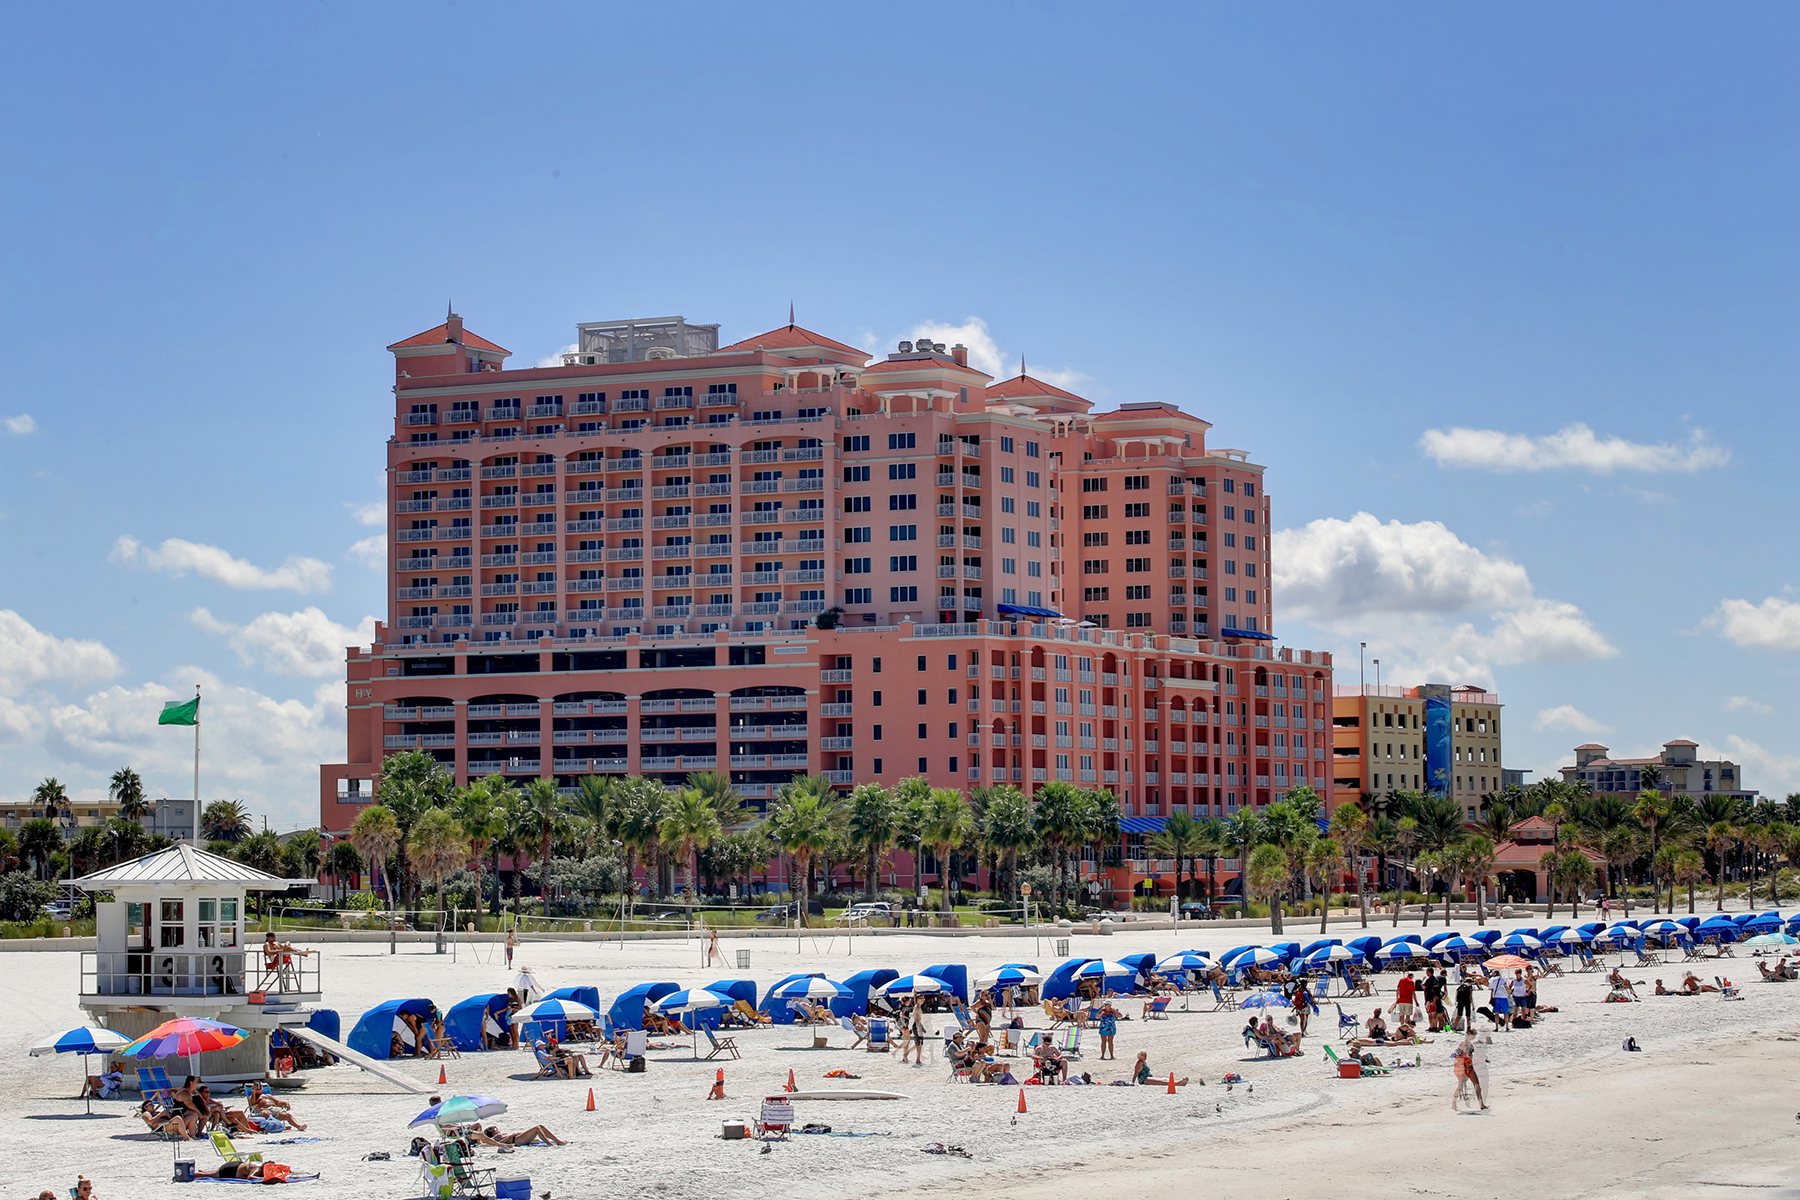 Condominium for Sale at CLEARWATER BEACH 301 S Gulfview Blvd 602 Clearwater Beach, Florida 33767 United States